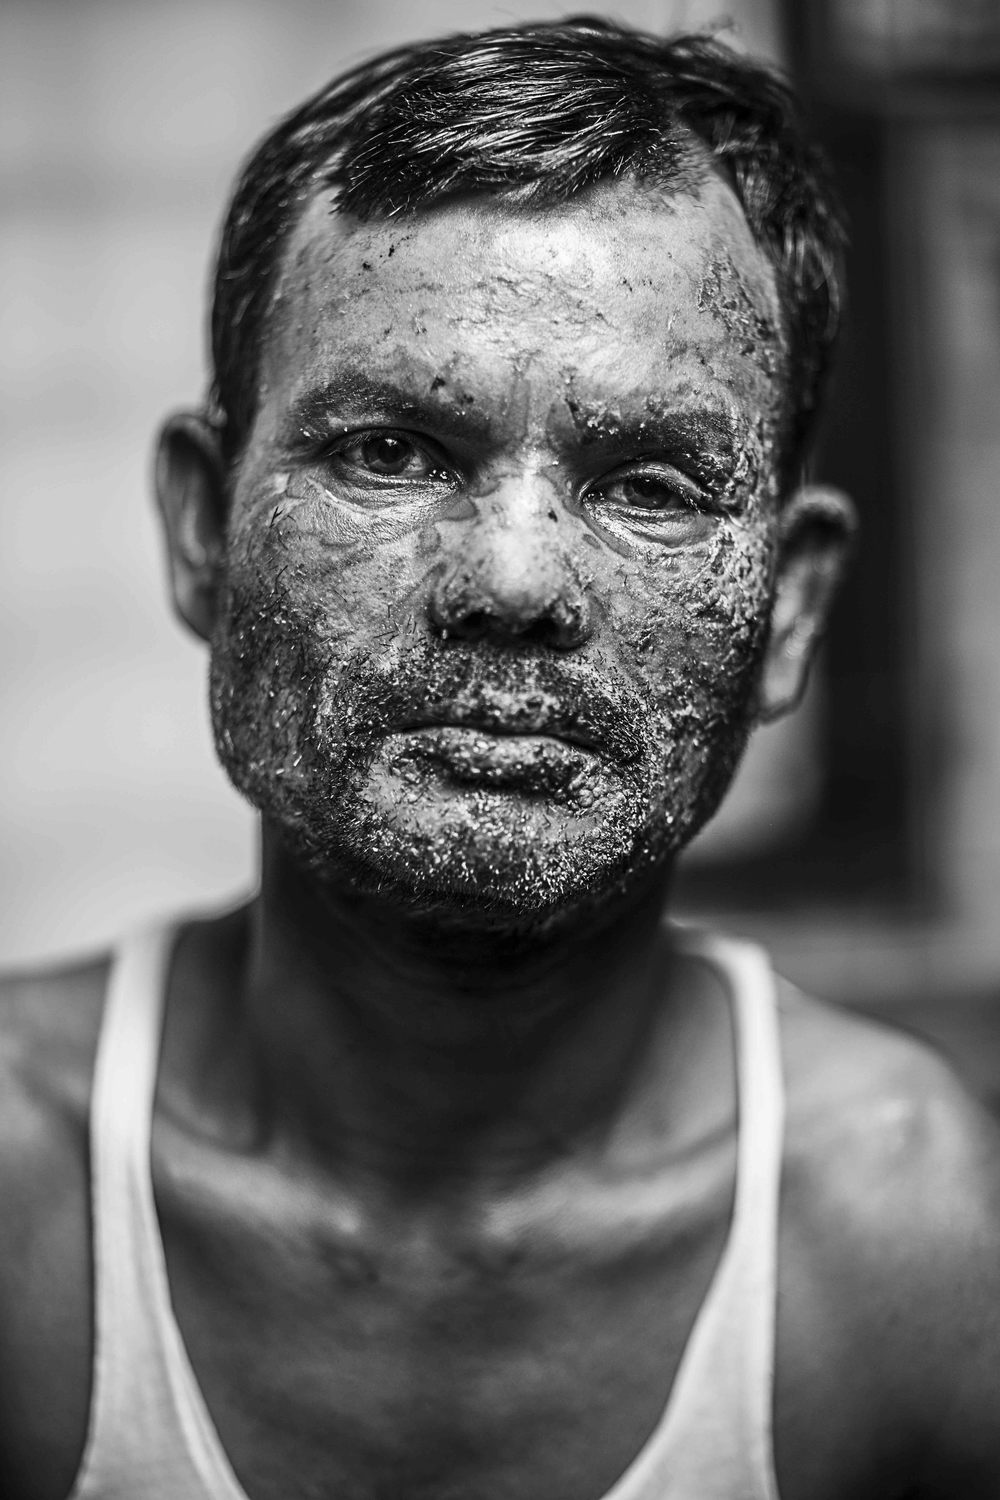 Alamgir Hossain, 40 years old a vegetable trader from Gazipur, was admitted to Dhaka Medical College Hospital (DMCH) with burns to 11% of his body on the 02/01/2014 when opposition activists hurled a Molotov bomb at a vegetable-laden truck.